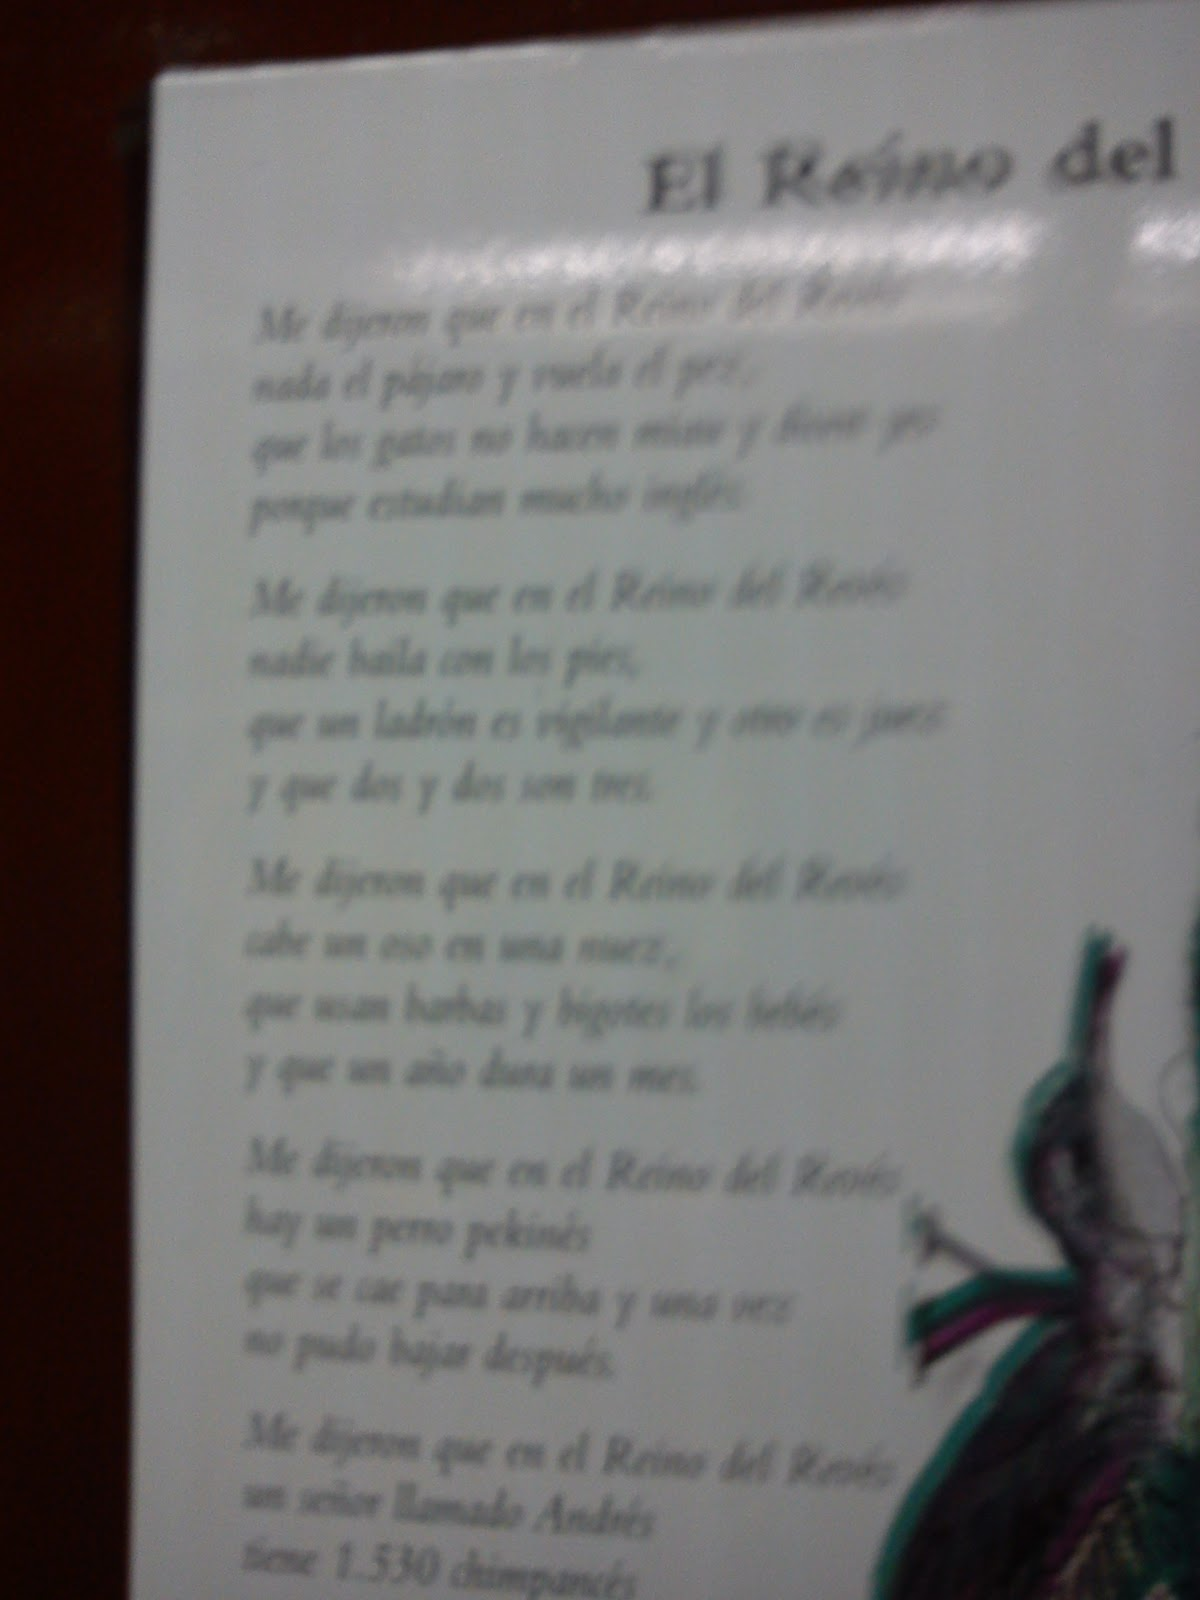 letra de cancion digital: